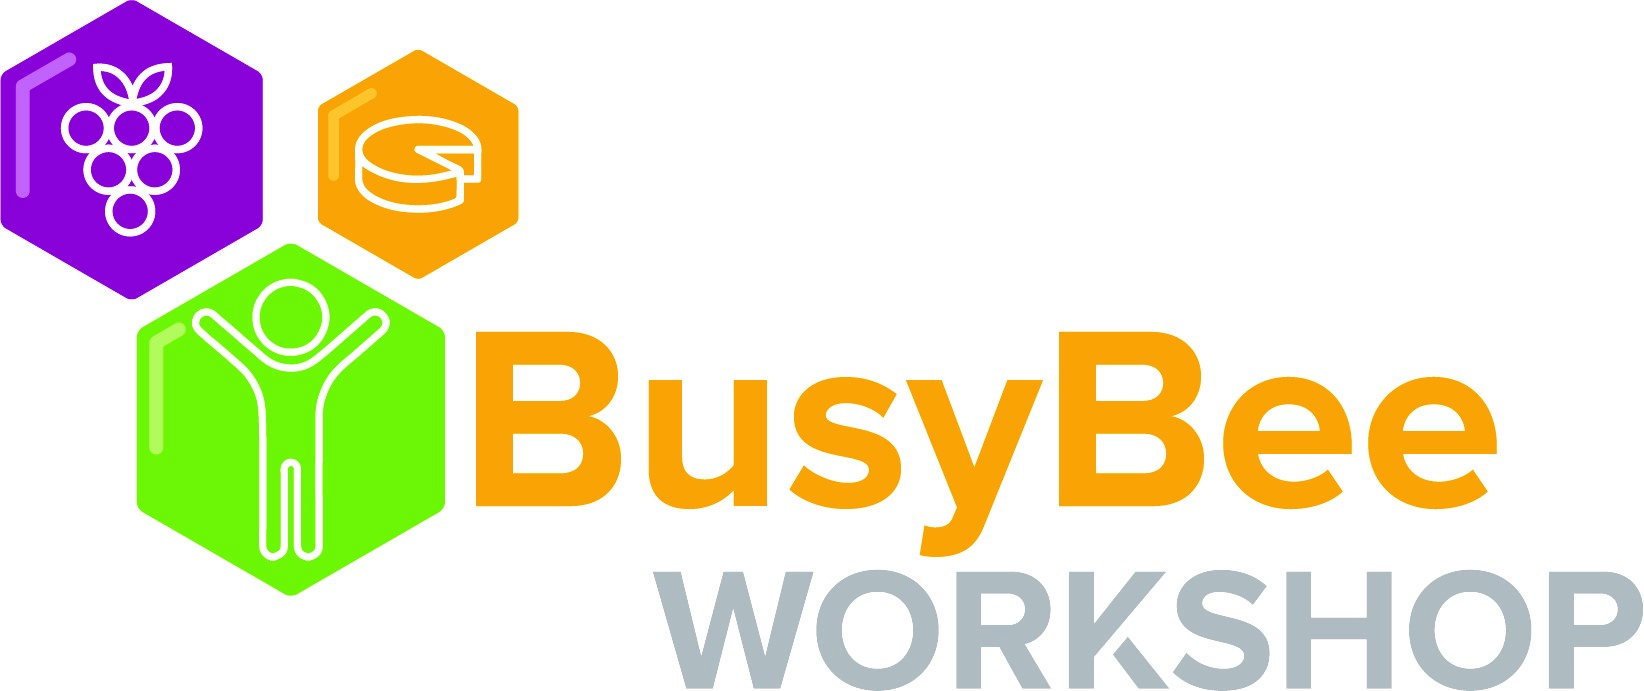 Approved cooperation project BusyBee Workshop